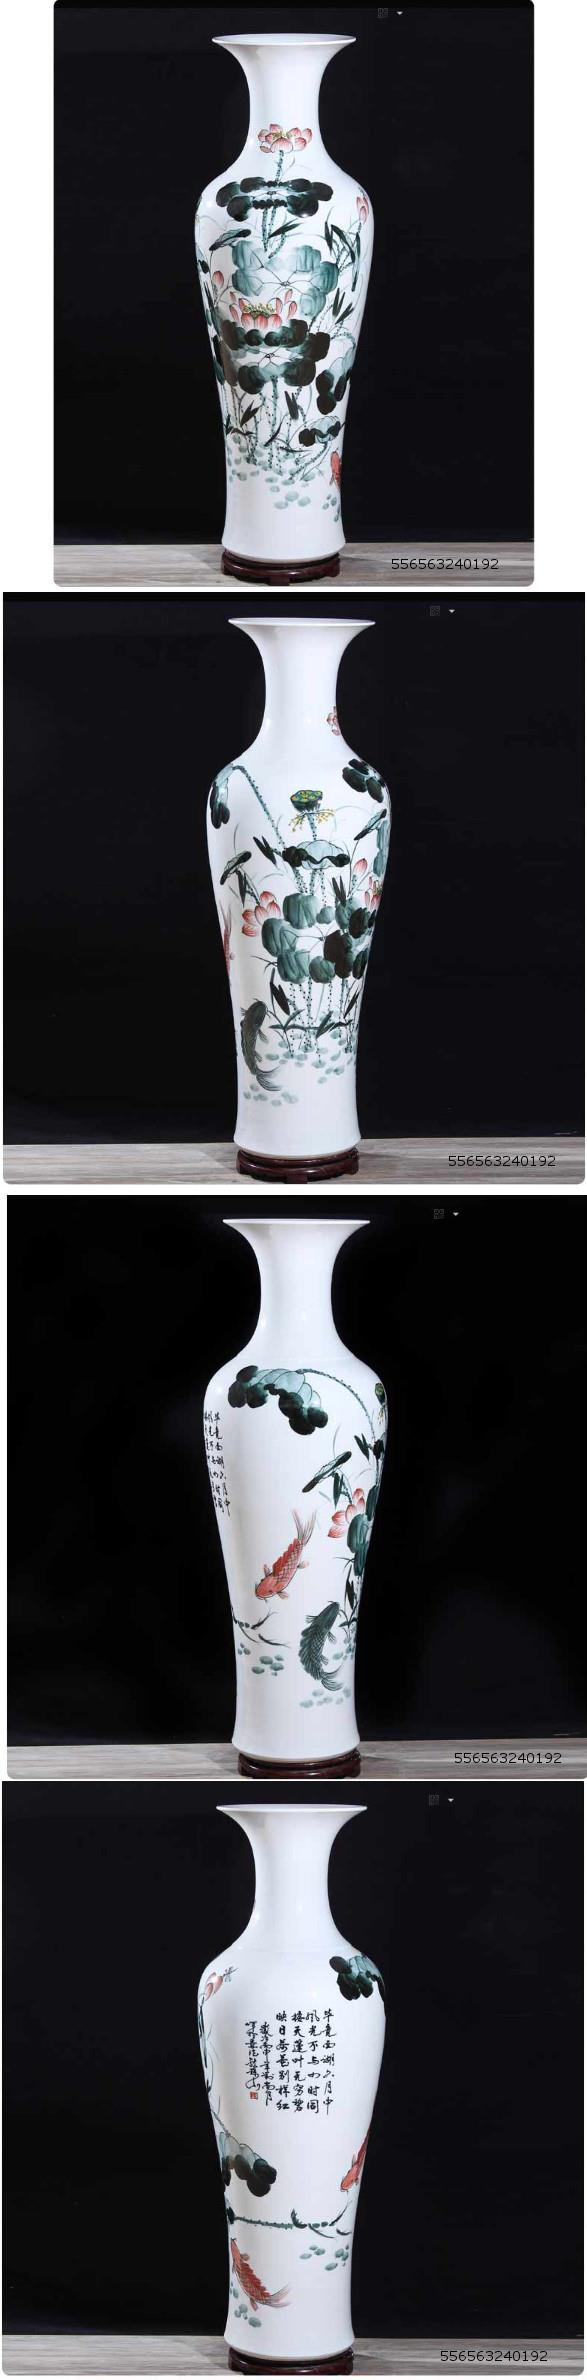 556563240192 1meter tall ink lotus ceramic vase